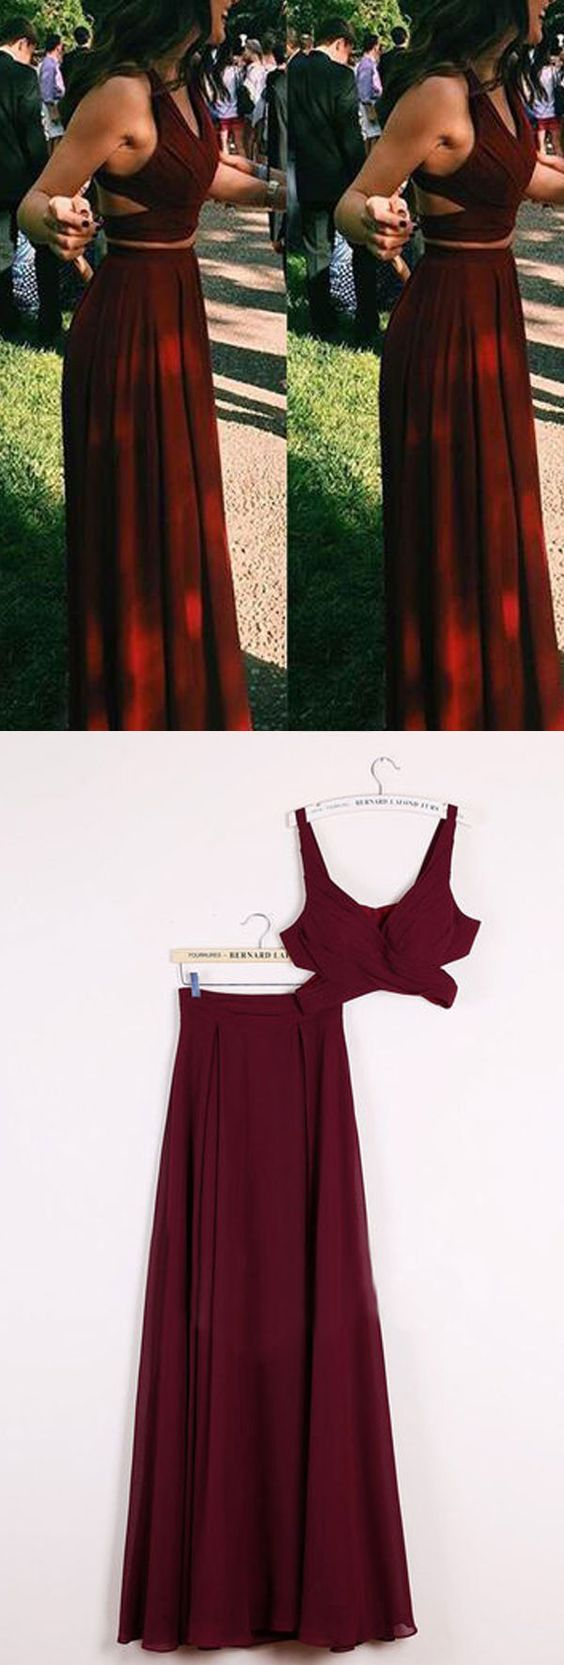 c7d8ea987cc Gorgeous Burgundy Red 2 pieces Prom Dresses Long Sexy Evening Gowns Chiffon  Two Piece Formal Dress